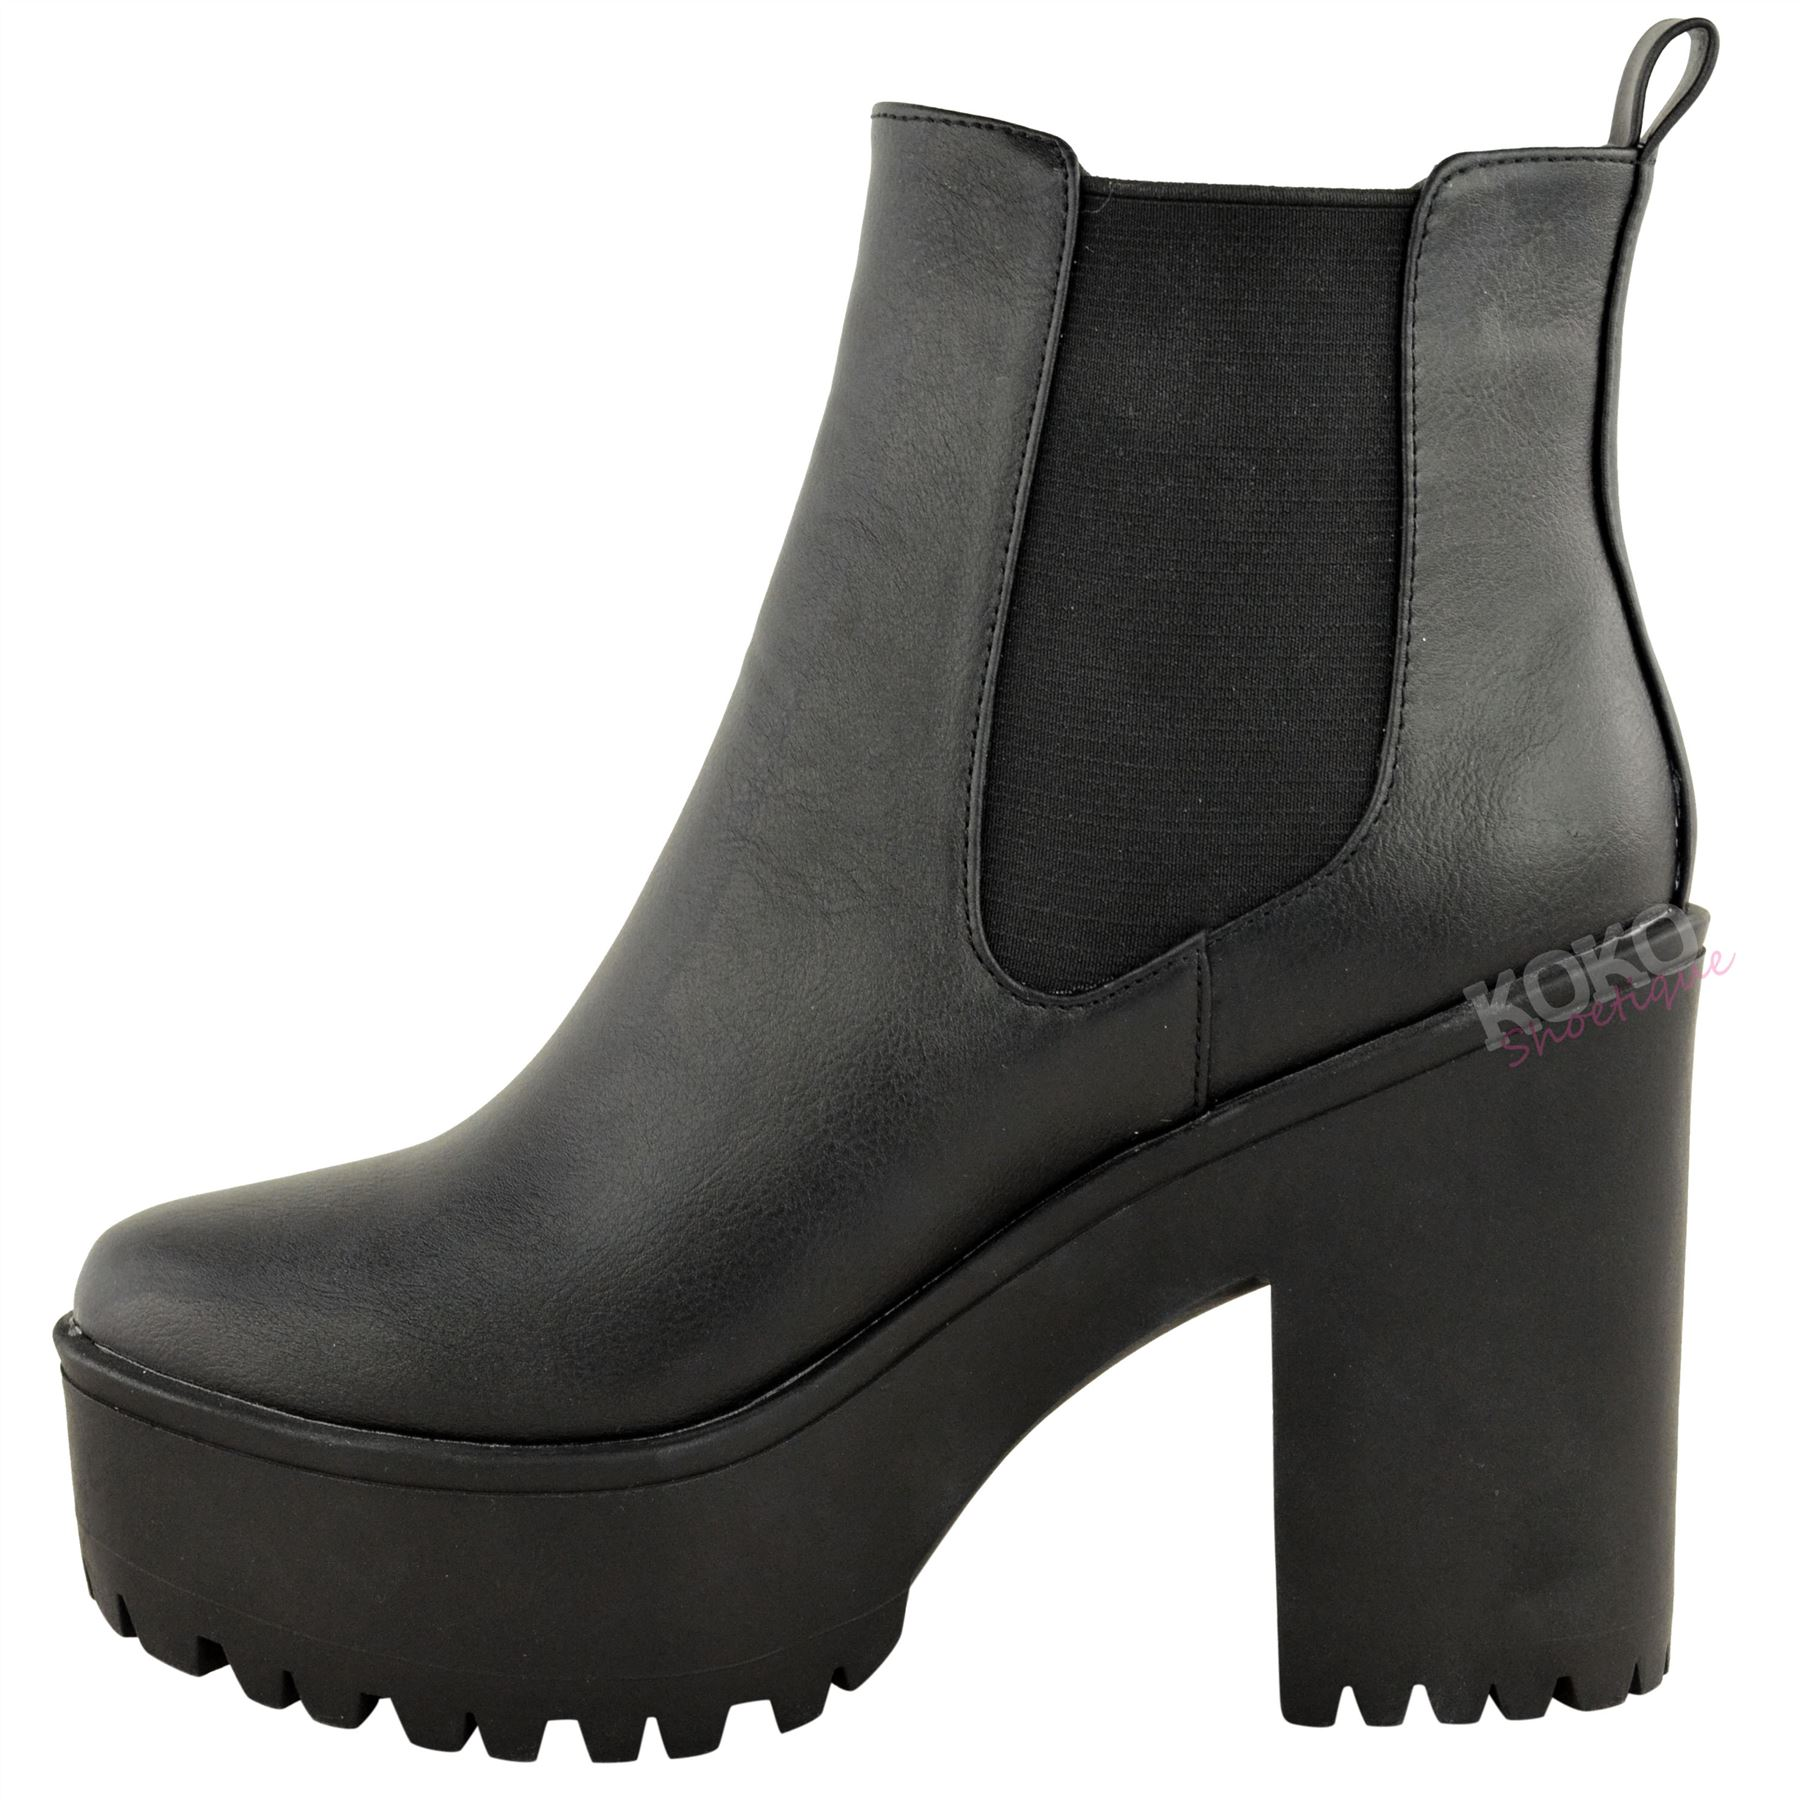 damen chelsea boots hoher blockabsatz plateau sohle mit rillen ebay. Black Bedroom Furniture Sets. Home Design Ideas